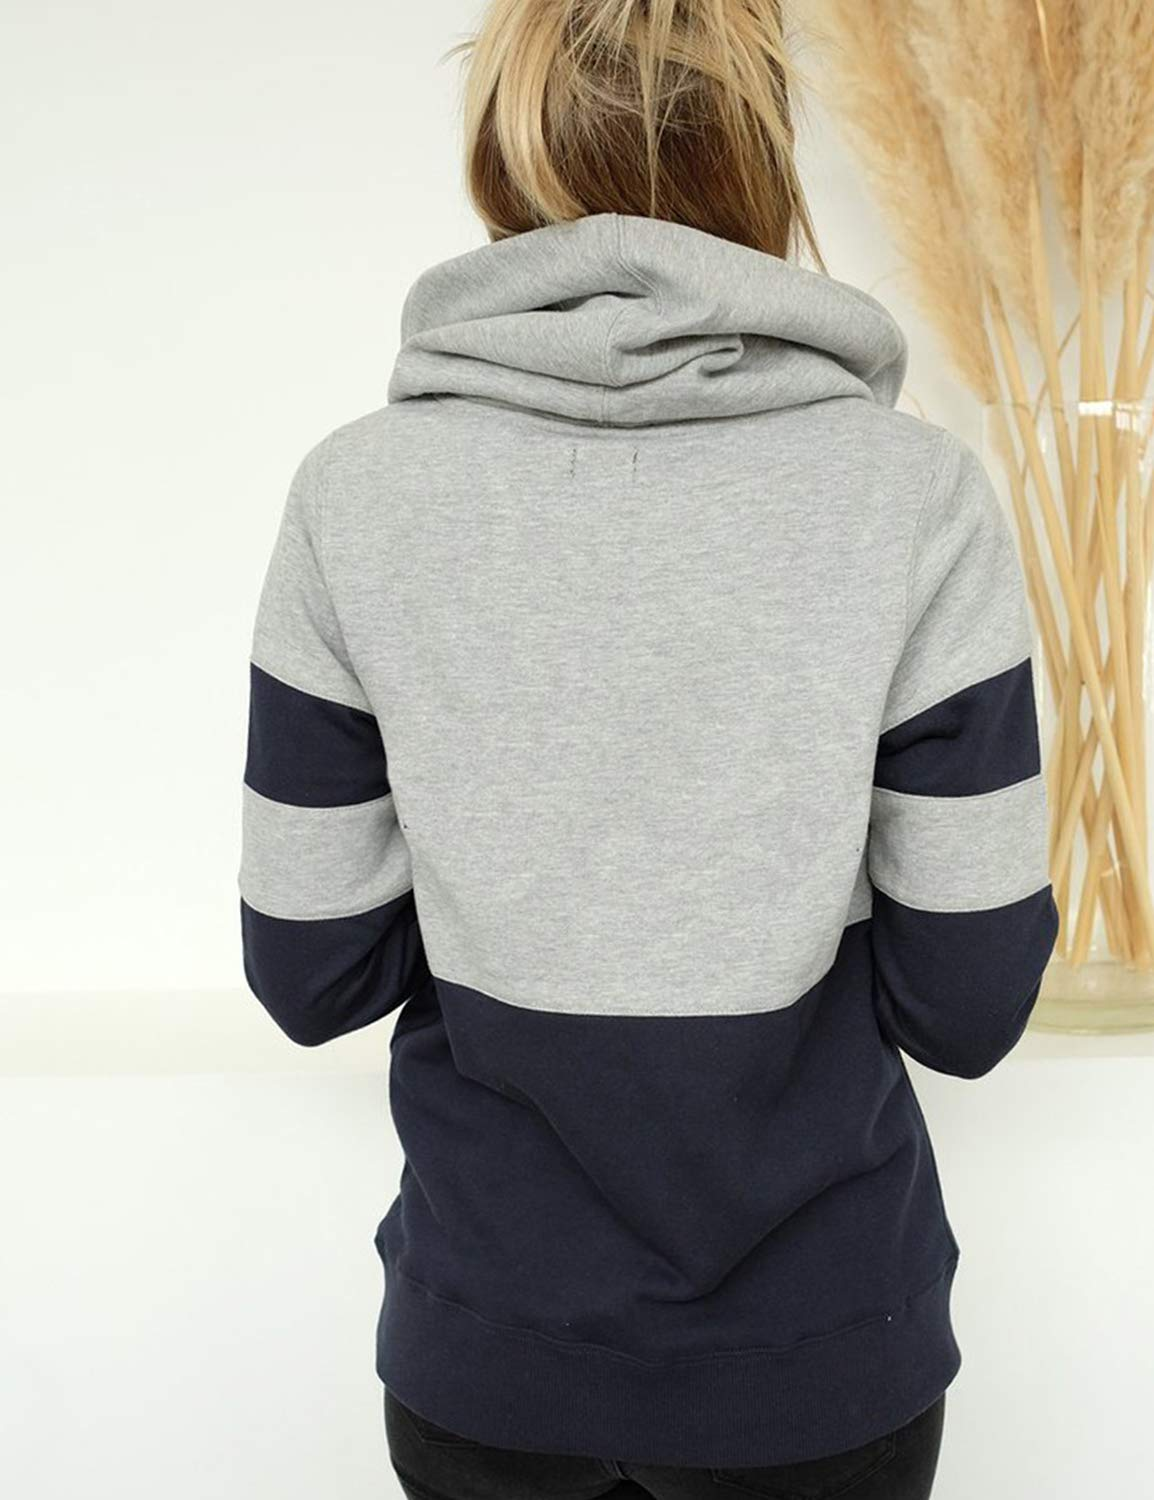 Blooming Jelly Women\'s Casual Pullover Hoodies Striped Color Block Long Sleeve Shirt Hooded Crewneck Sweatshirts Top(L, Navy Blue)